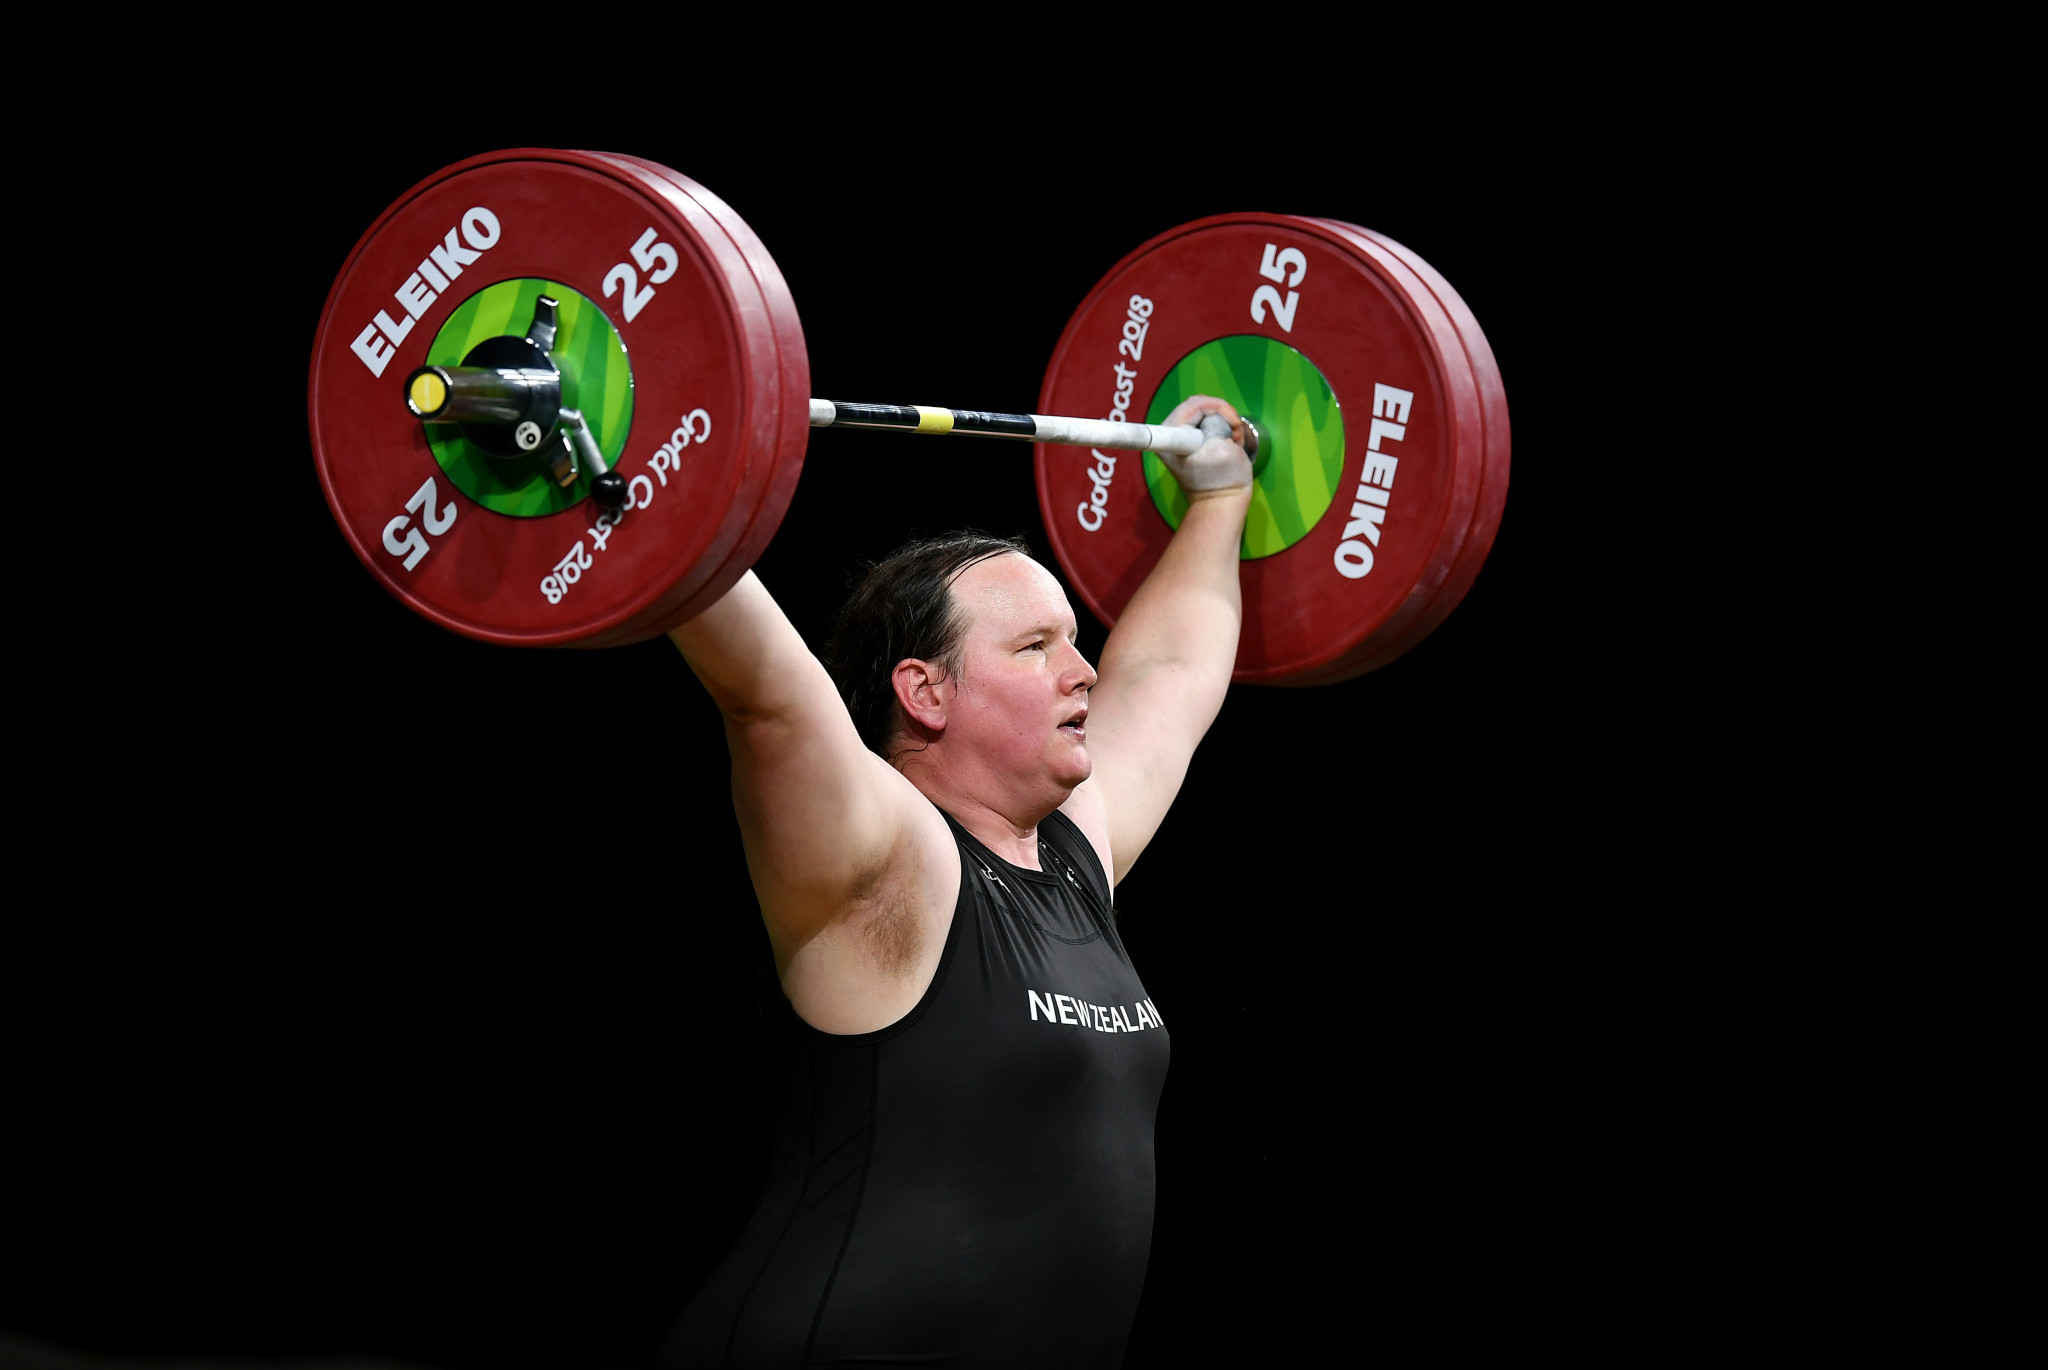 Weightlifter Laurel Hubbard is among the highest profile transgender athletes ©Getty Images